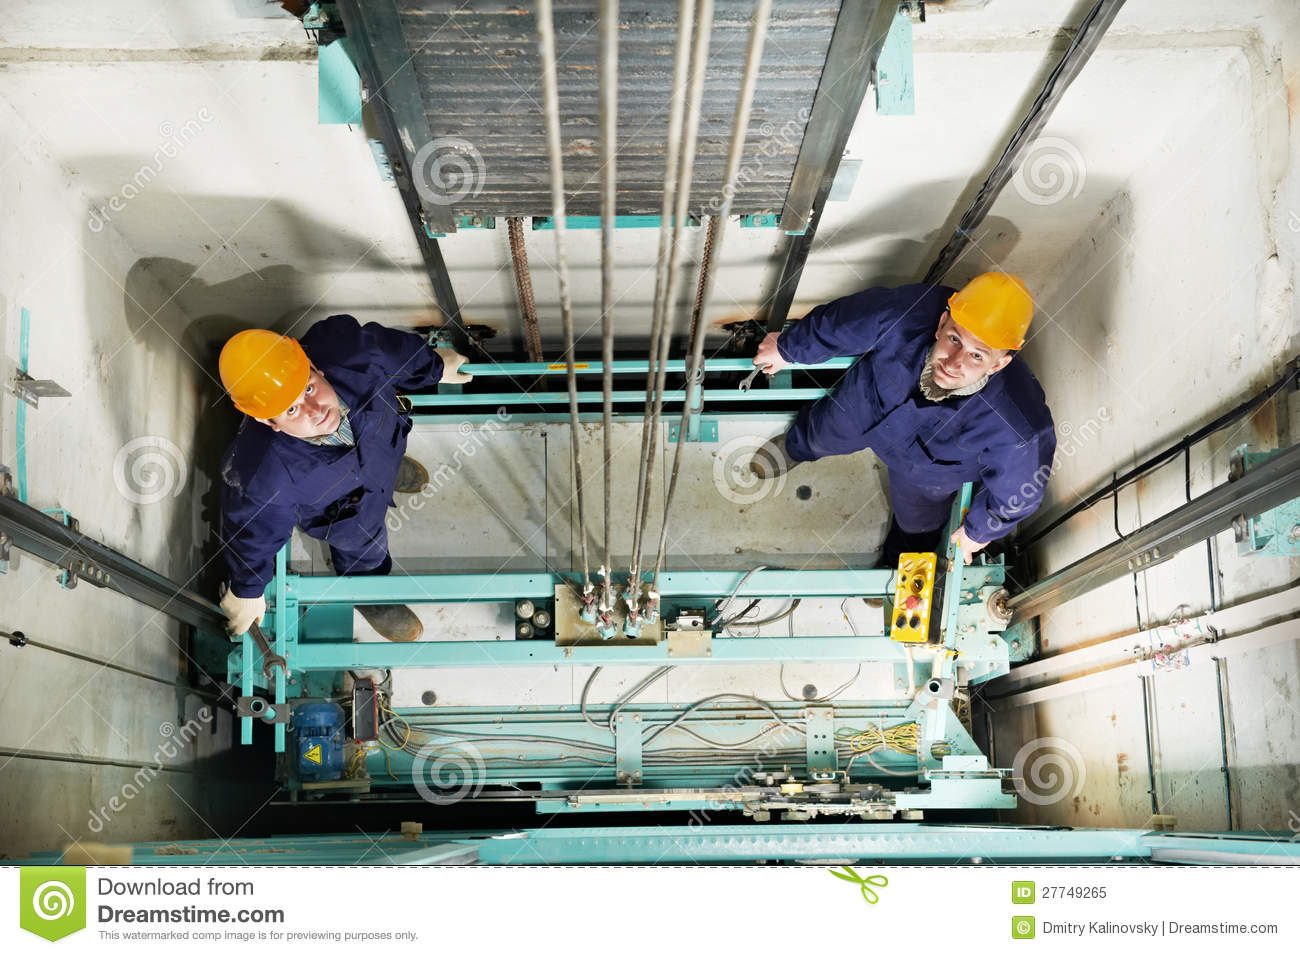 machinists adjusting lift in elevator hoist way stock